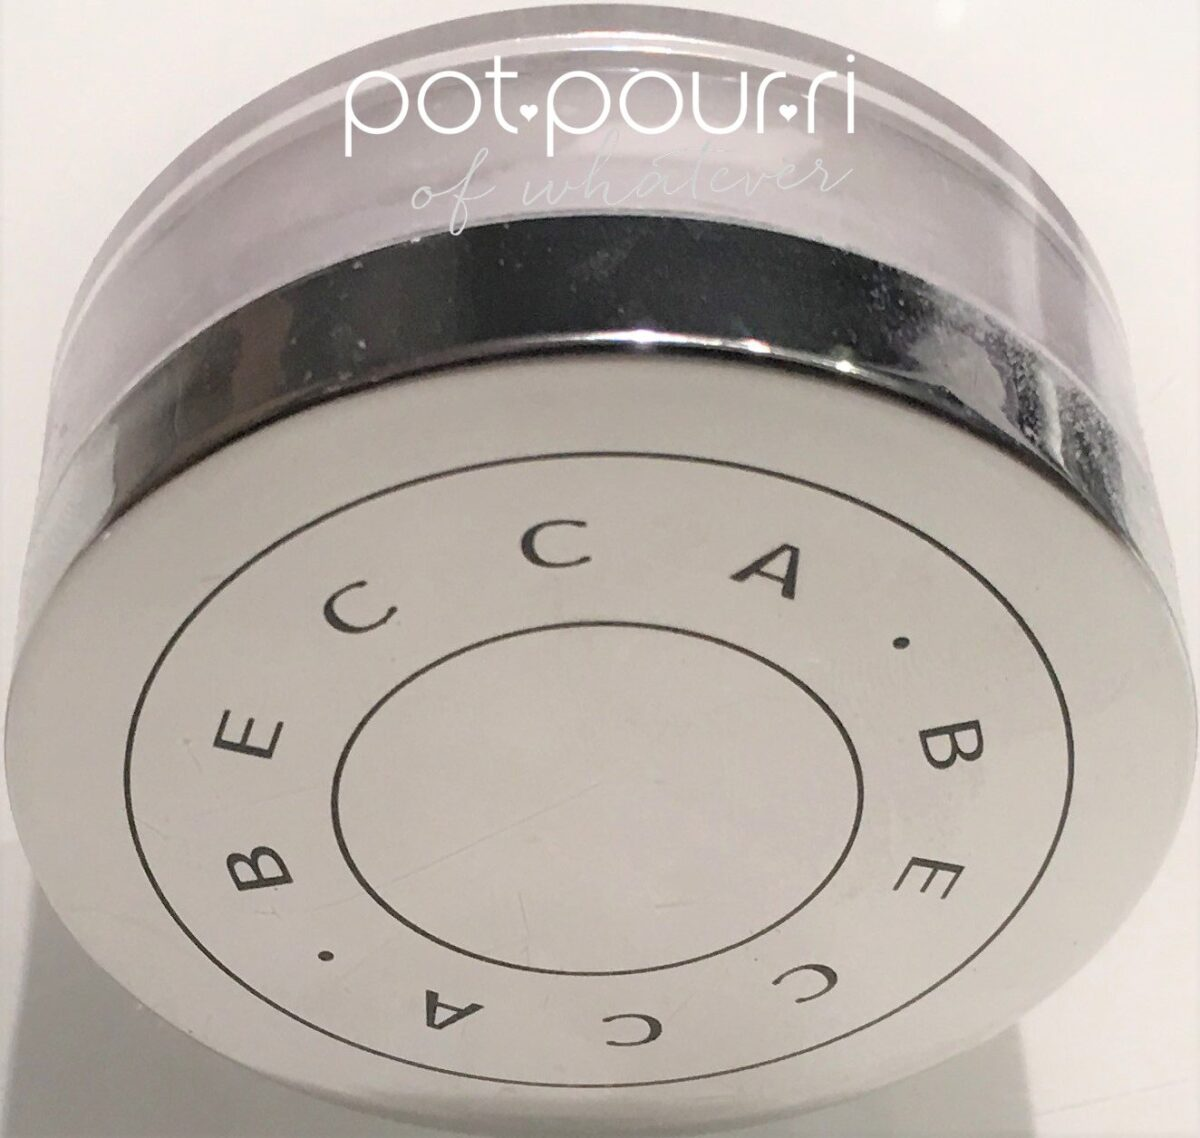 Becca setting powder jar